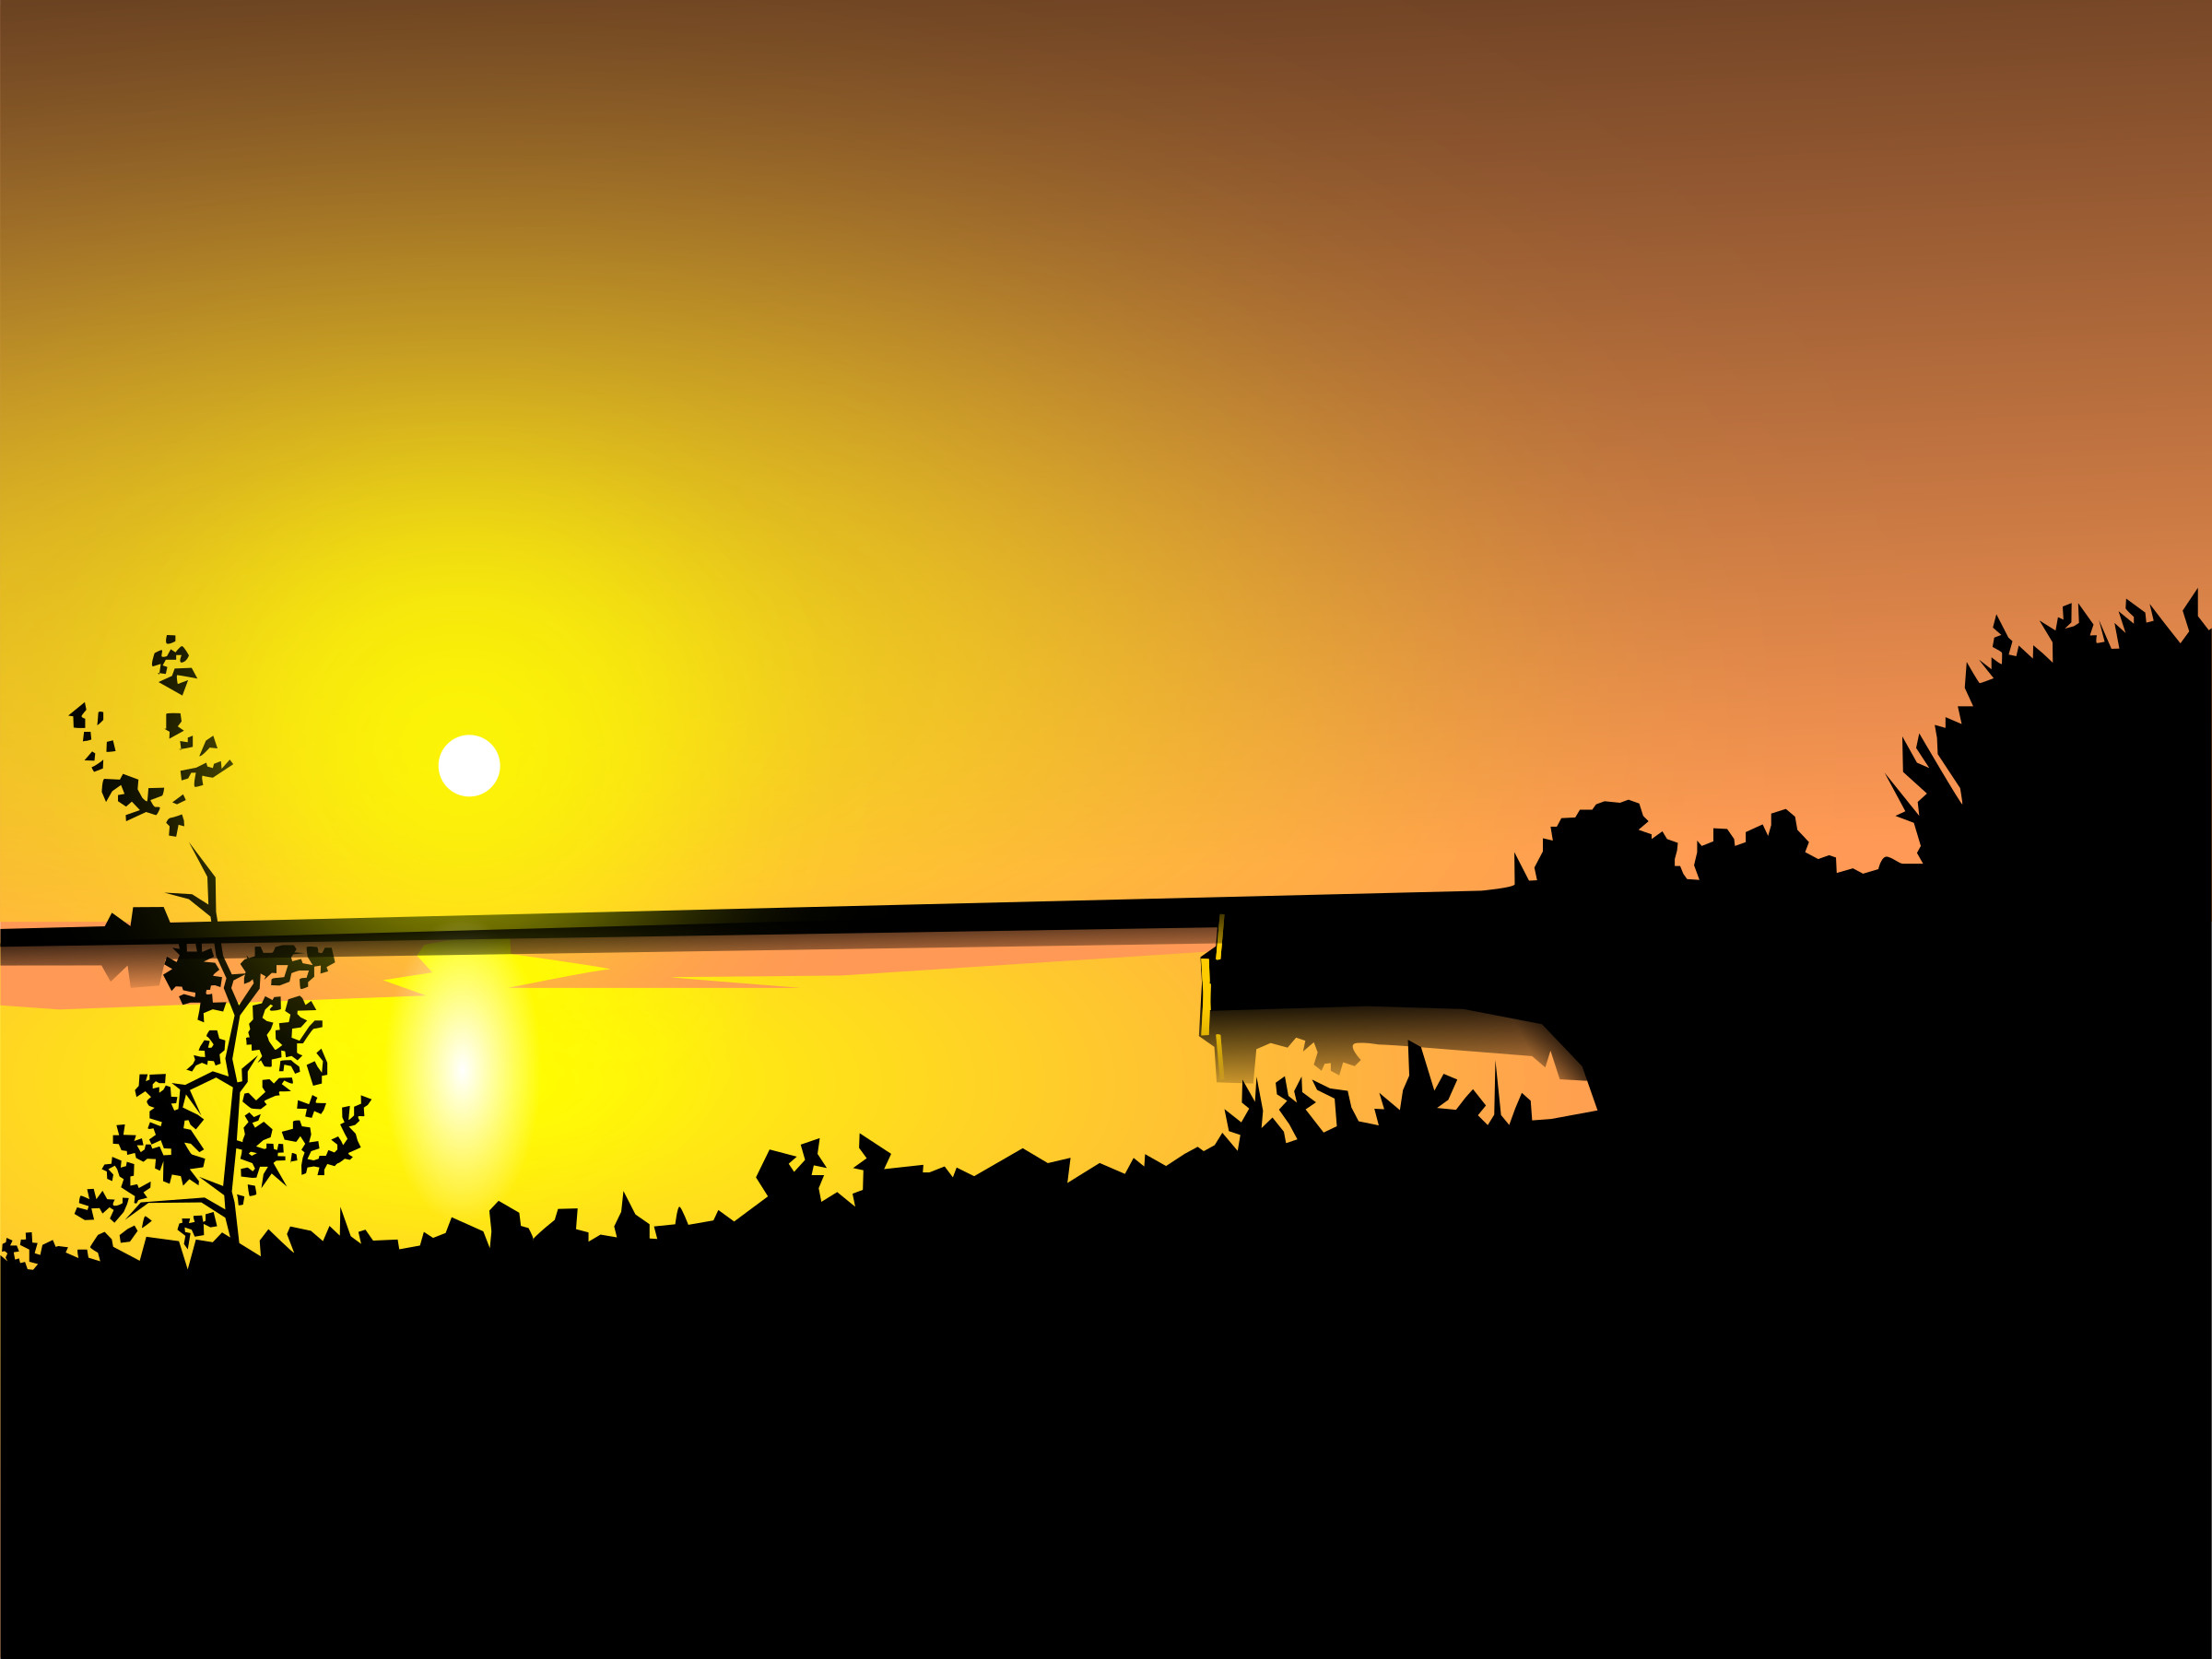 Background clipart sunset. Pictures images x free